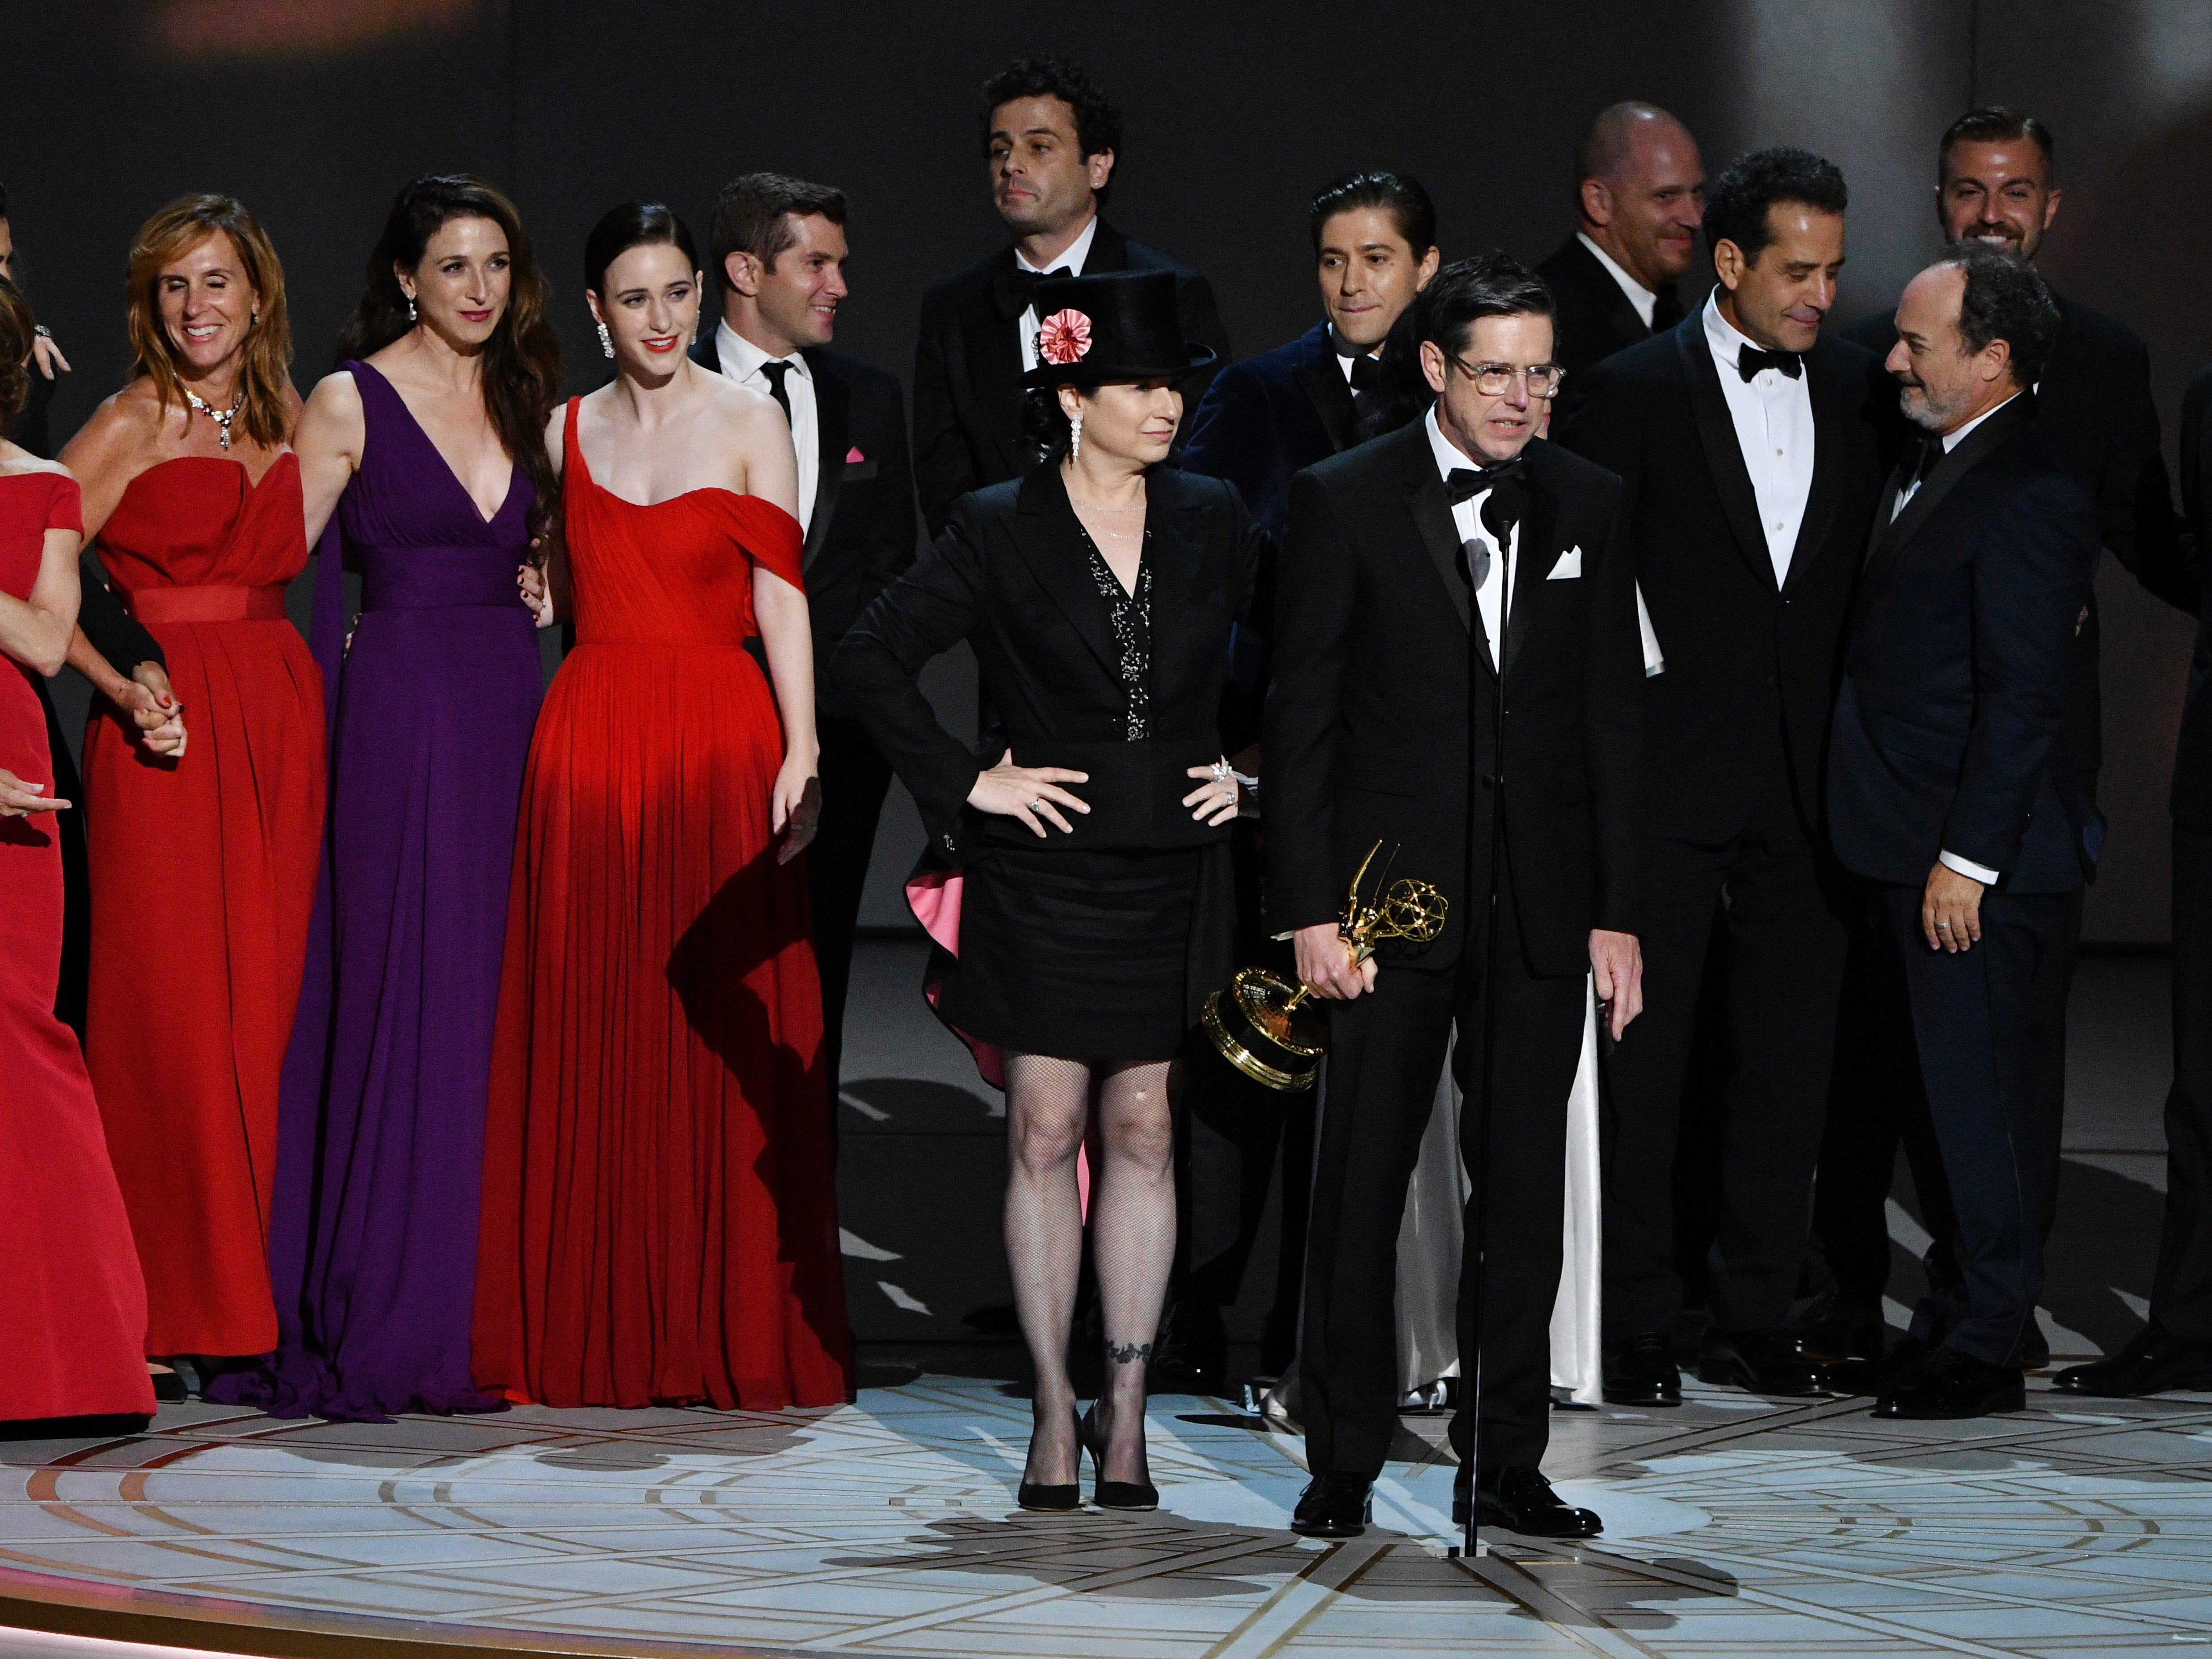 """Amy Sherman-Palladino, Daniel Palladino and the cast and crew of """"The Marvelous Mrs. Maisel"""" on Amazon Prime Video  accept the award for outstanding comedy series."""